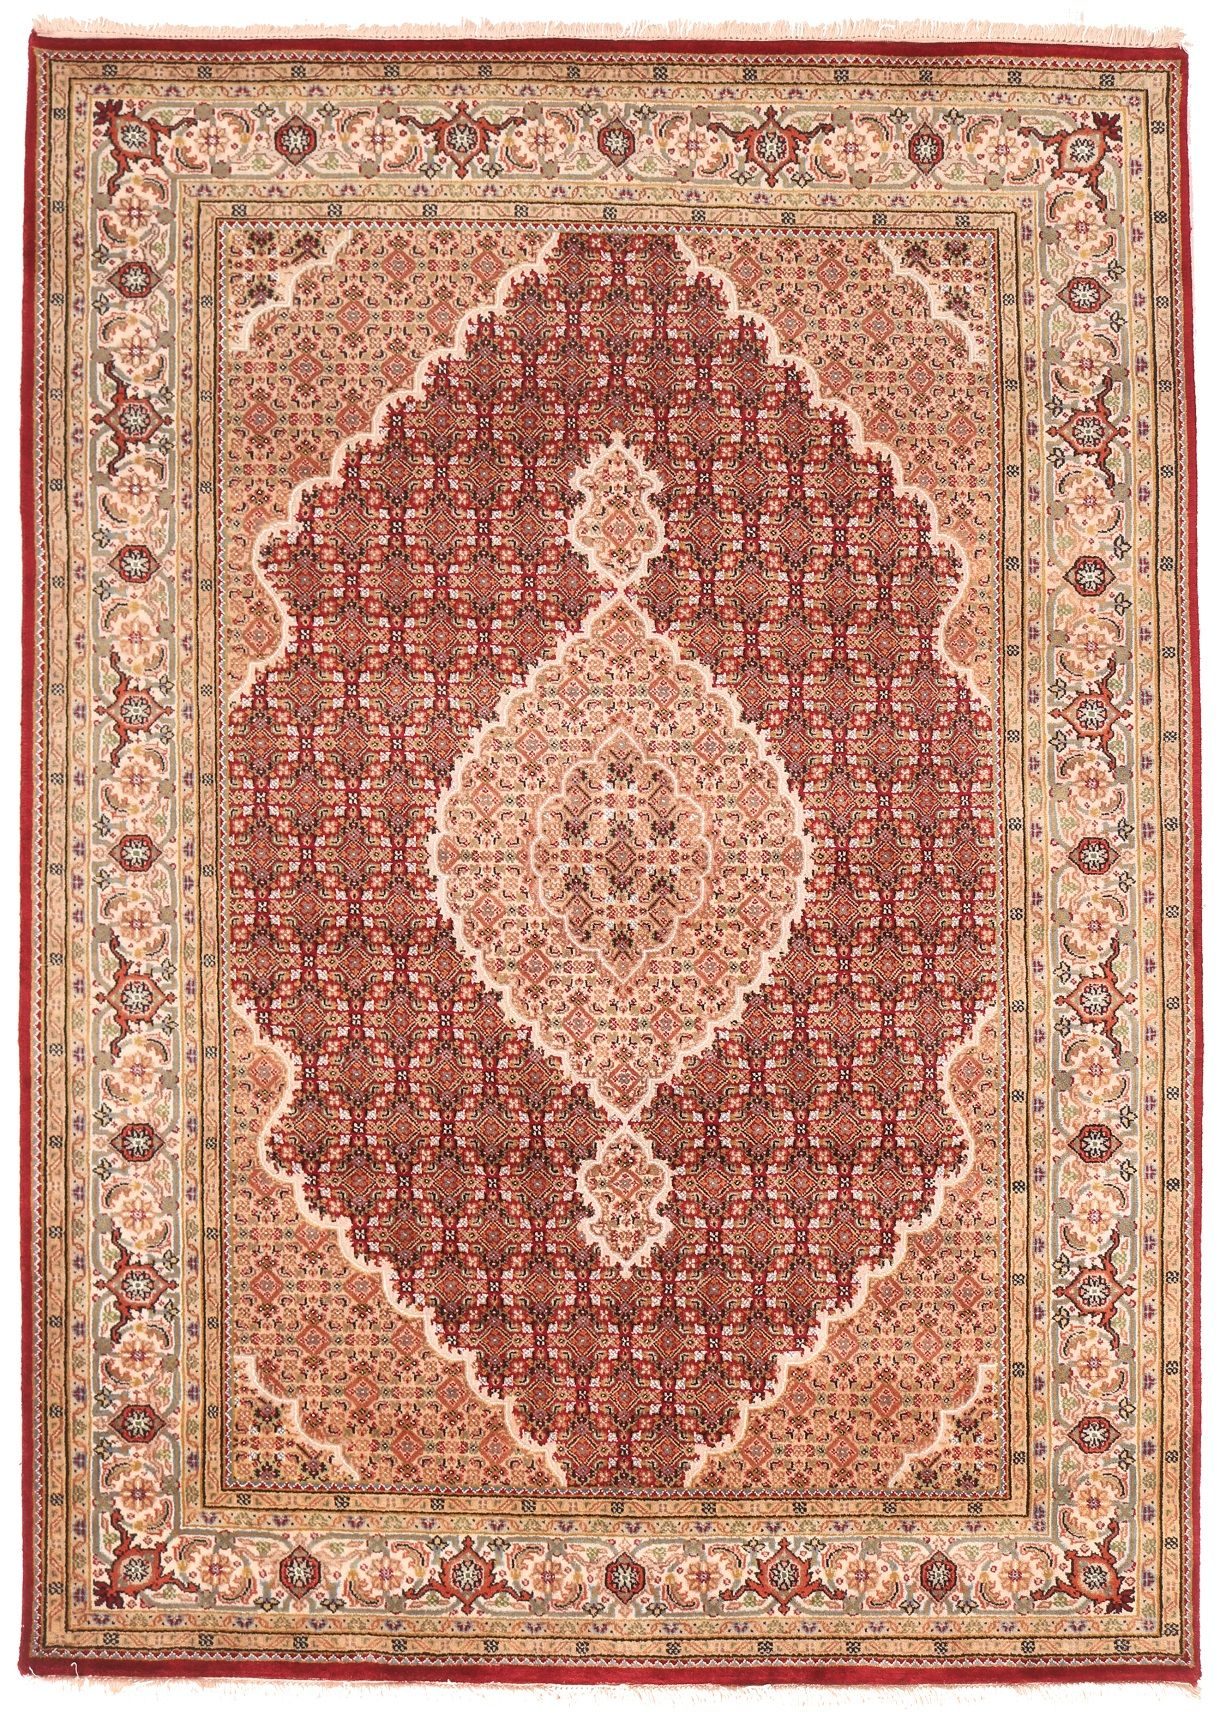 Persian Tabriz design Indian rug - 7'8 x 5'6